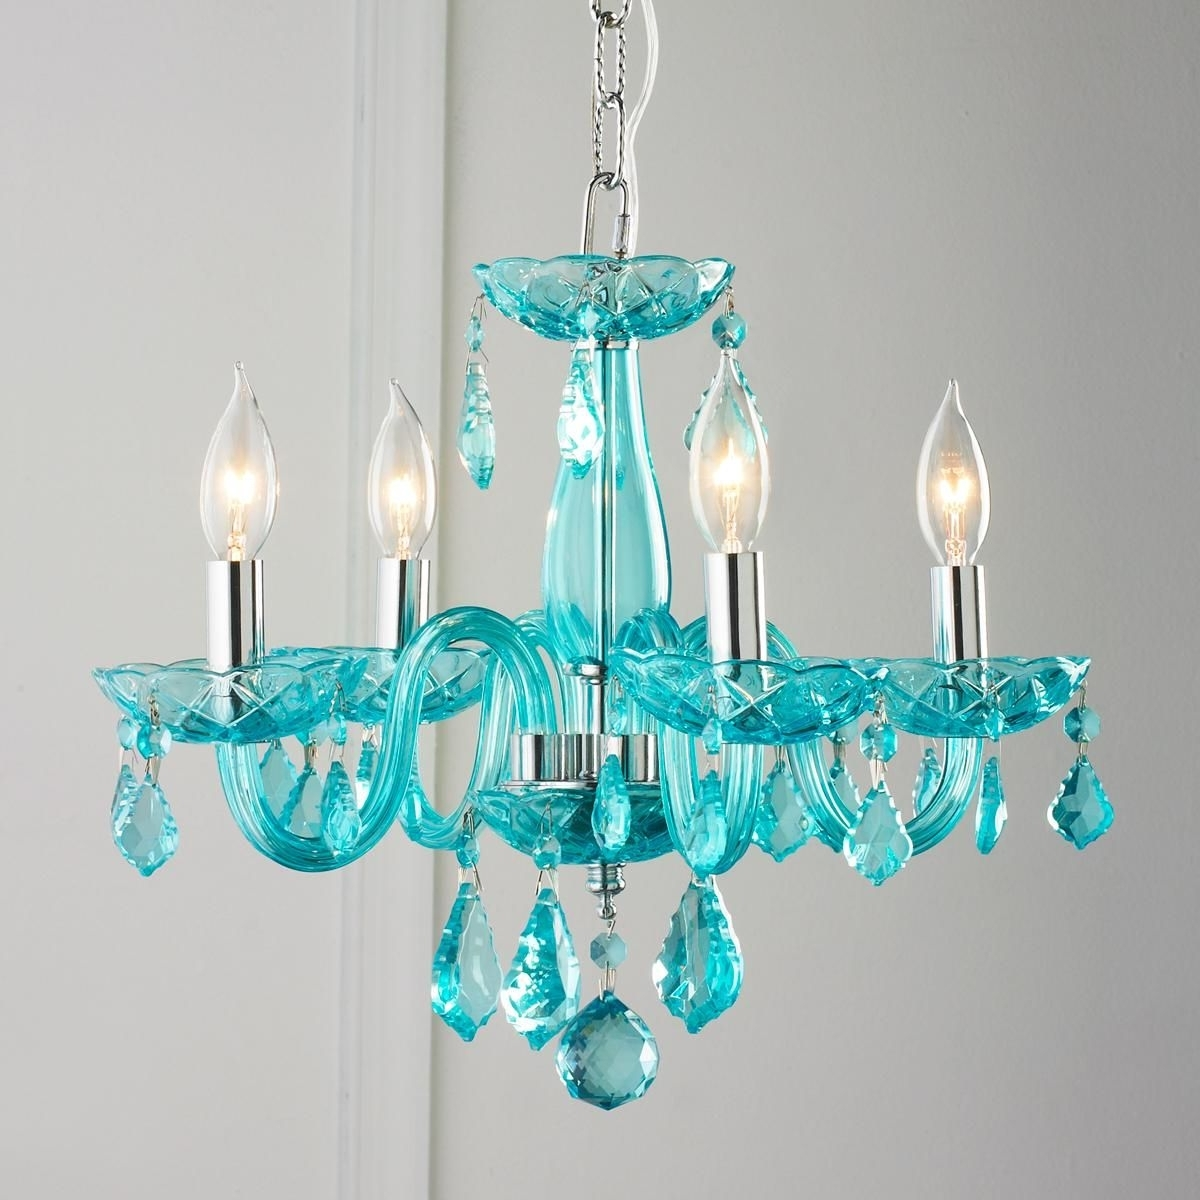 Turquoise Bedroom Chandeliers With Regard To Most Popular Color Crystal Mini Chandelier (View 8 of 20)